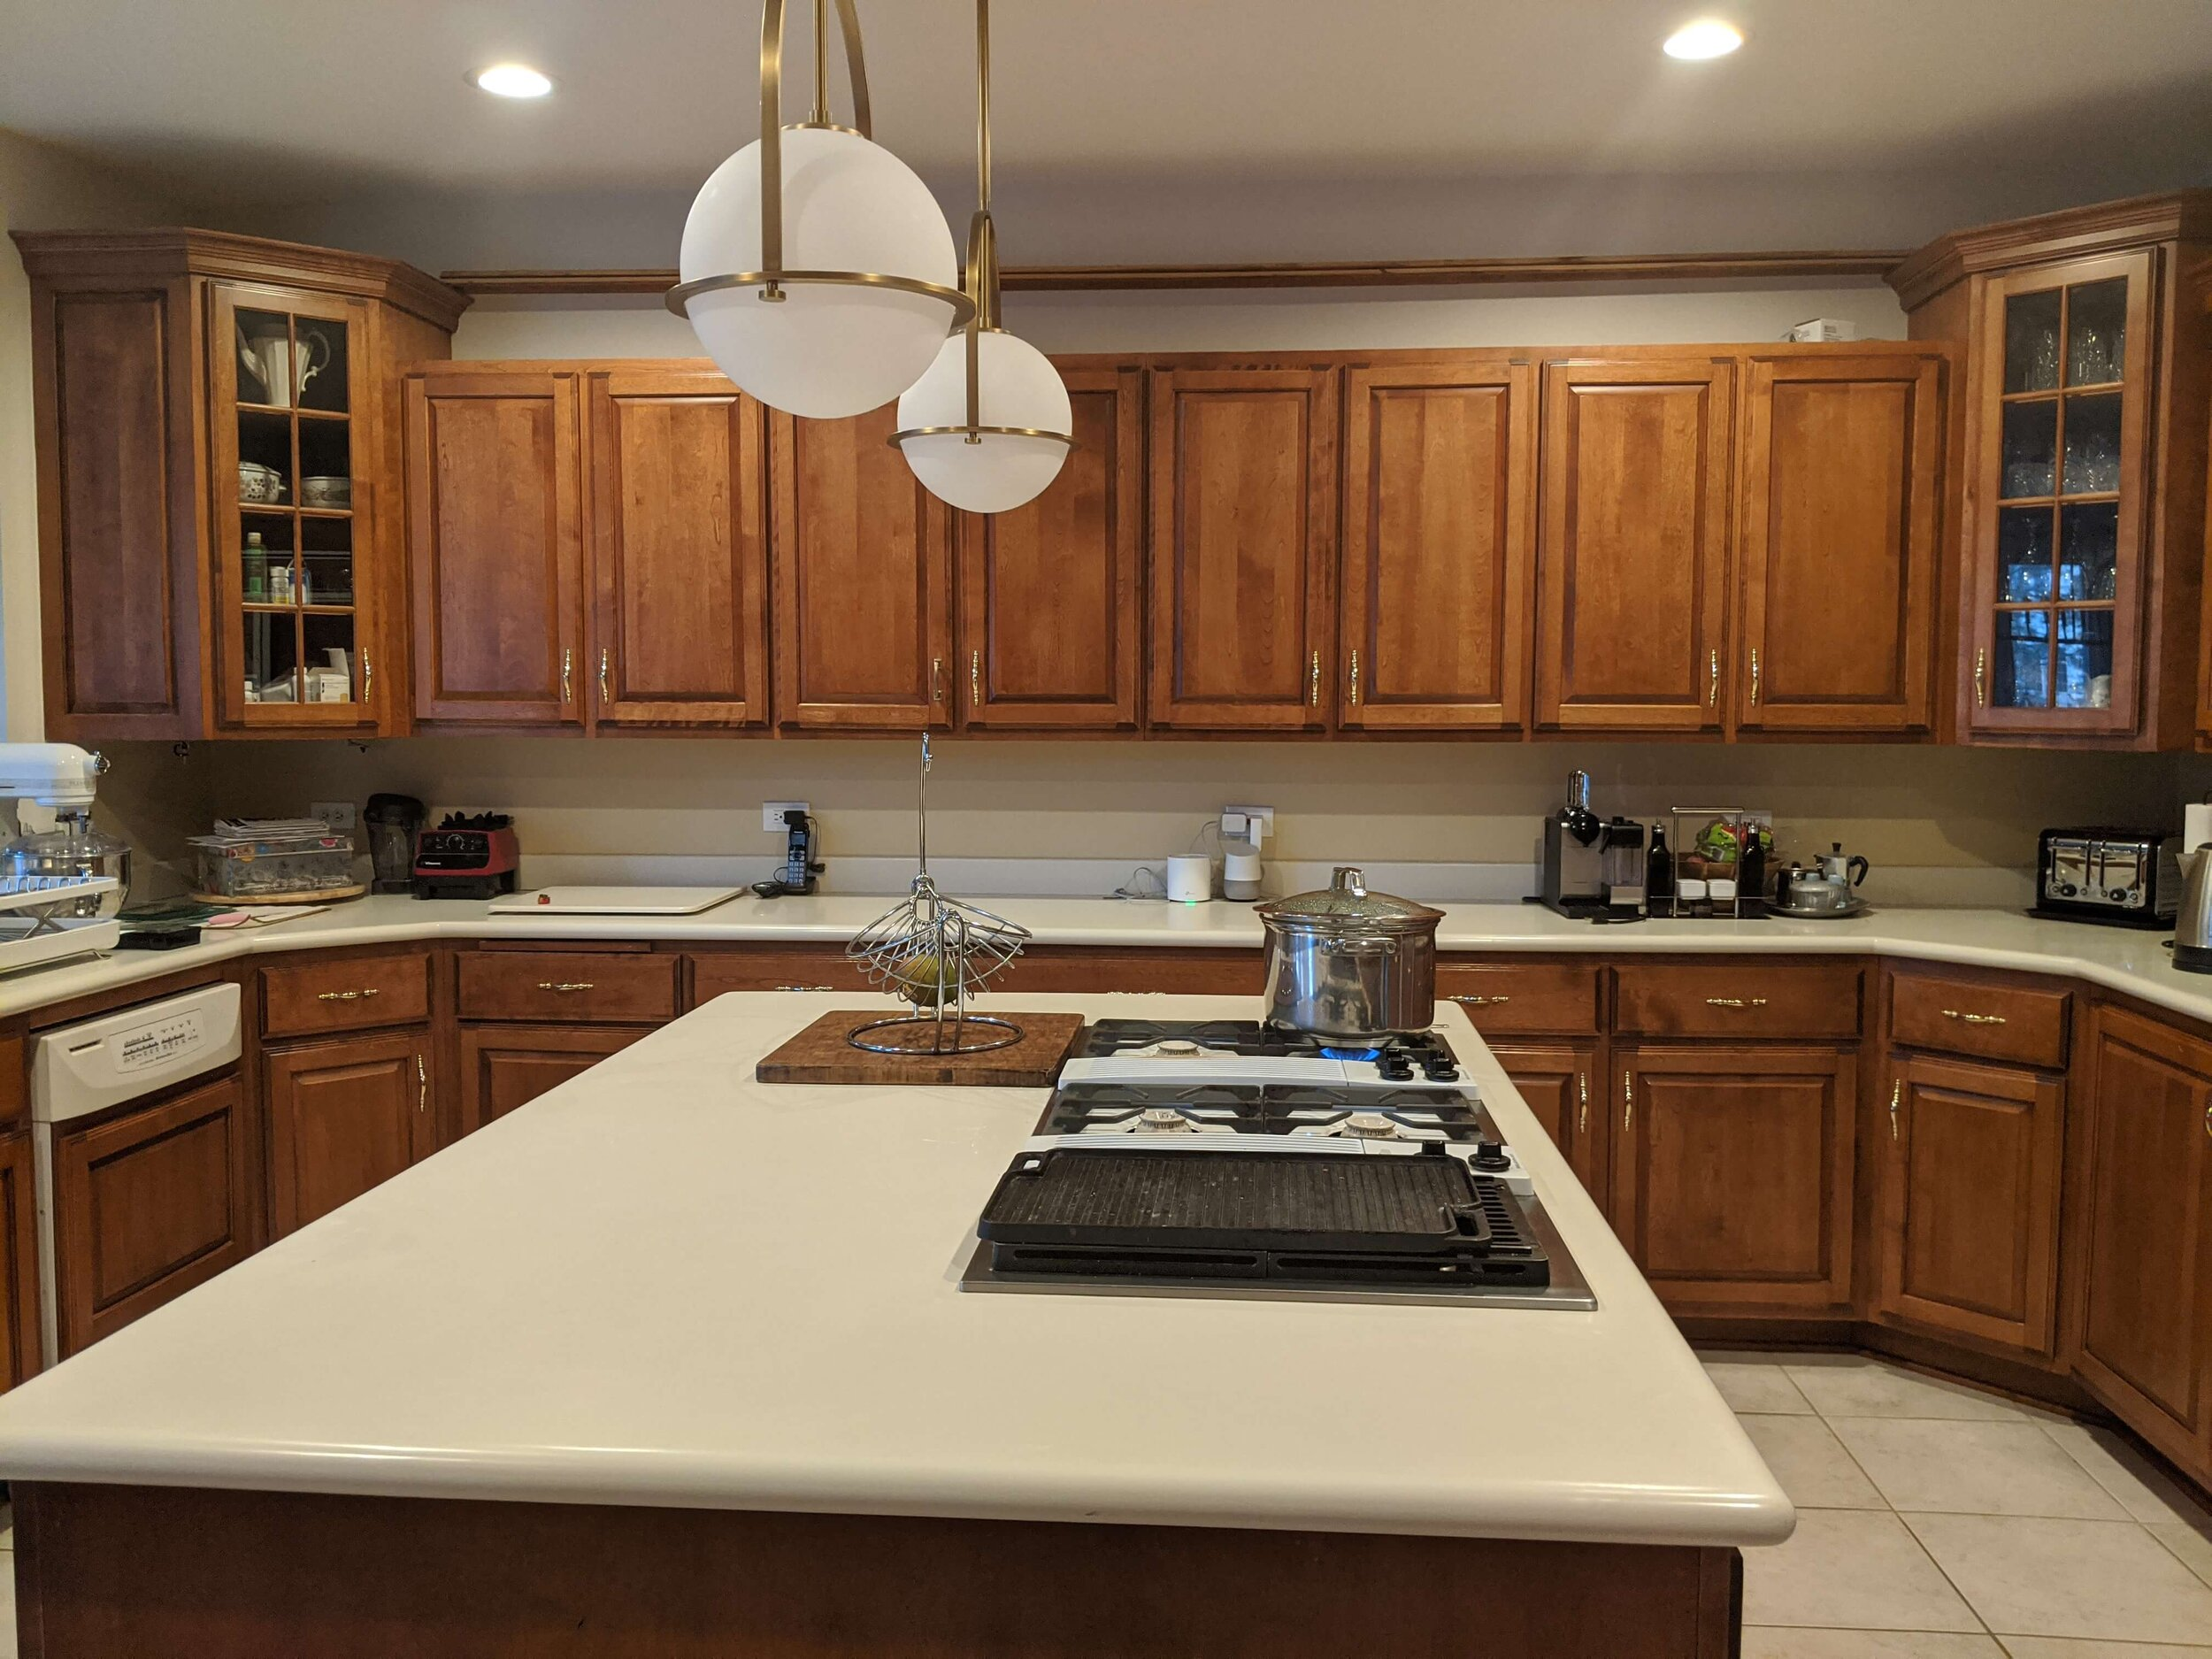 How To Update A Kitchen With Wood Cabinets [Without ...